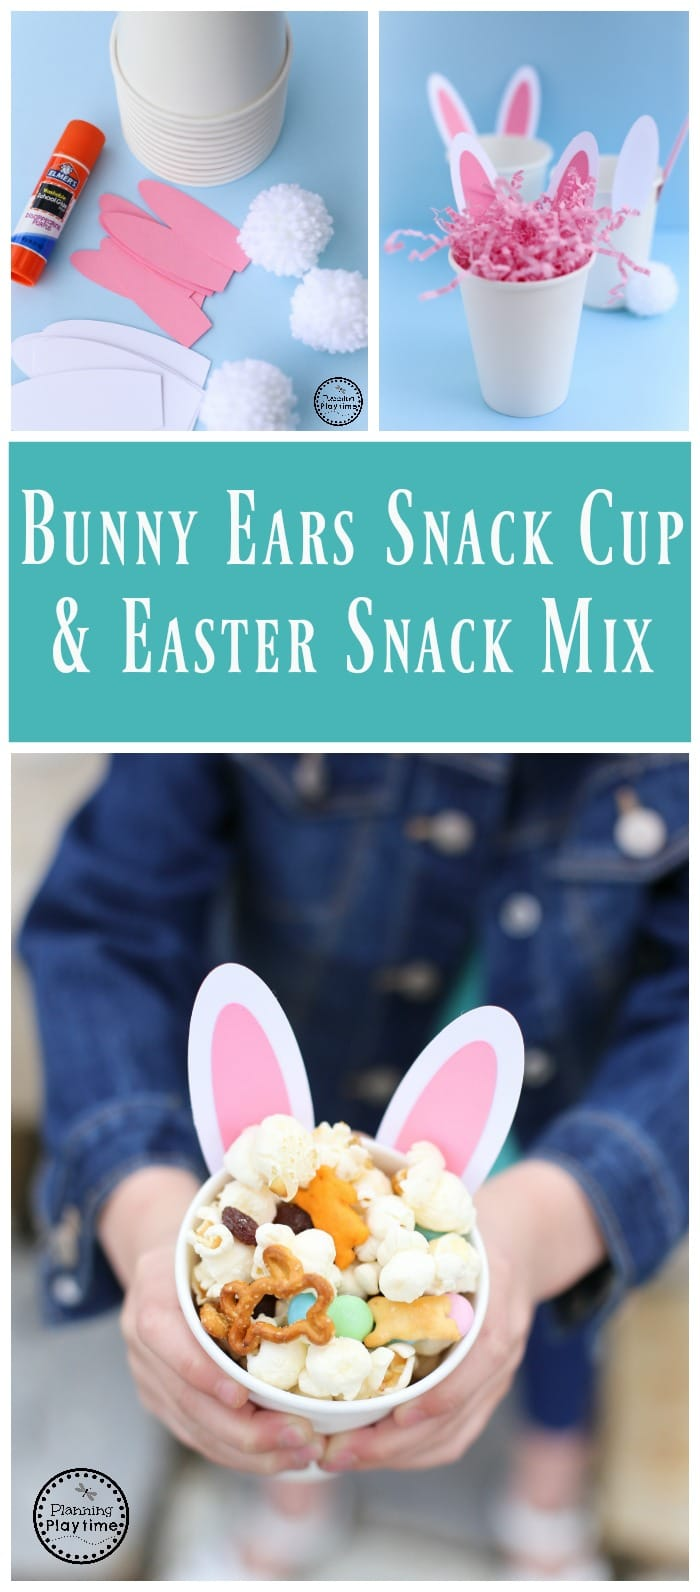 Bunny Ears Snack Cup and Easter Snack Mix